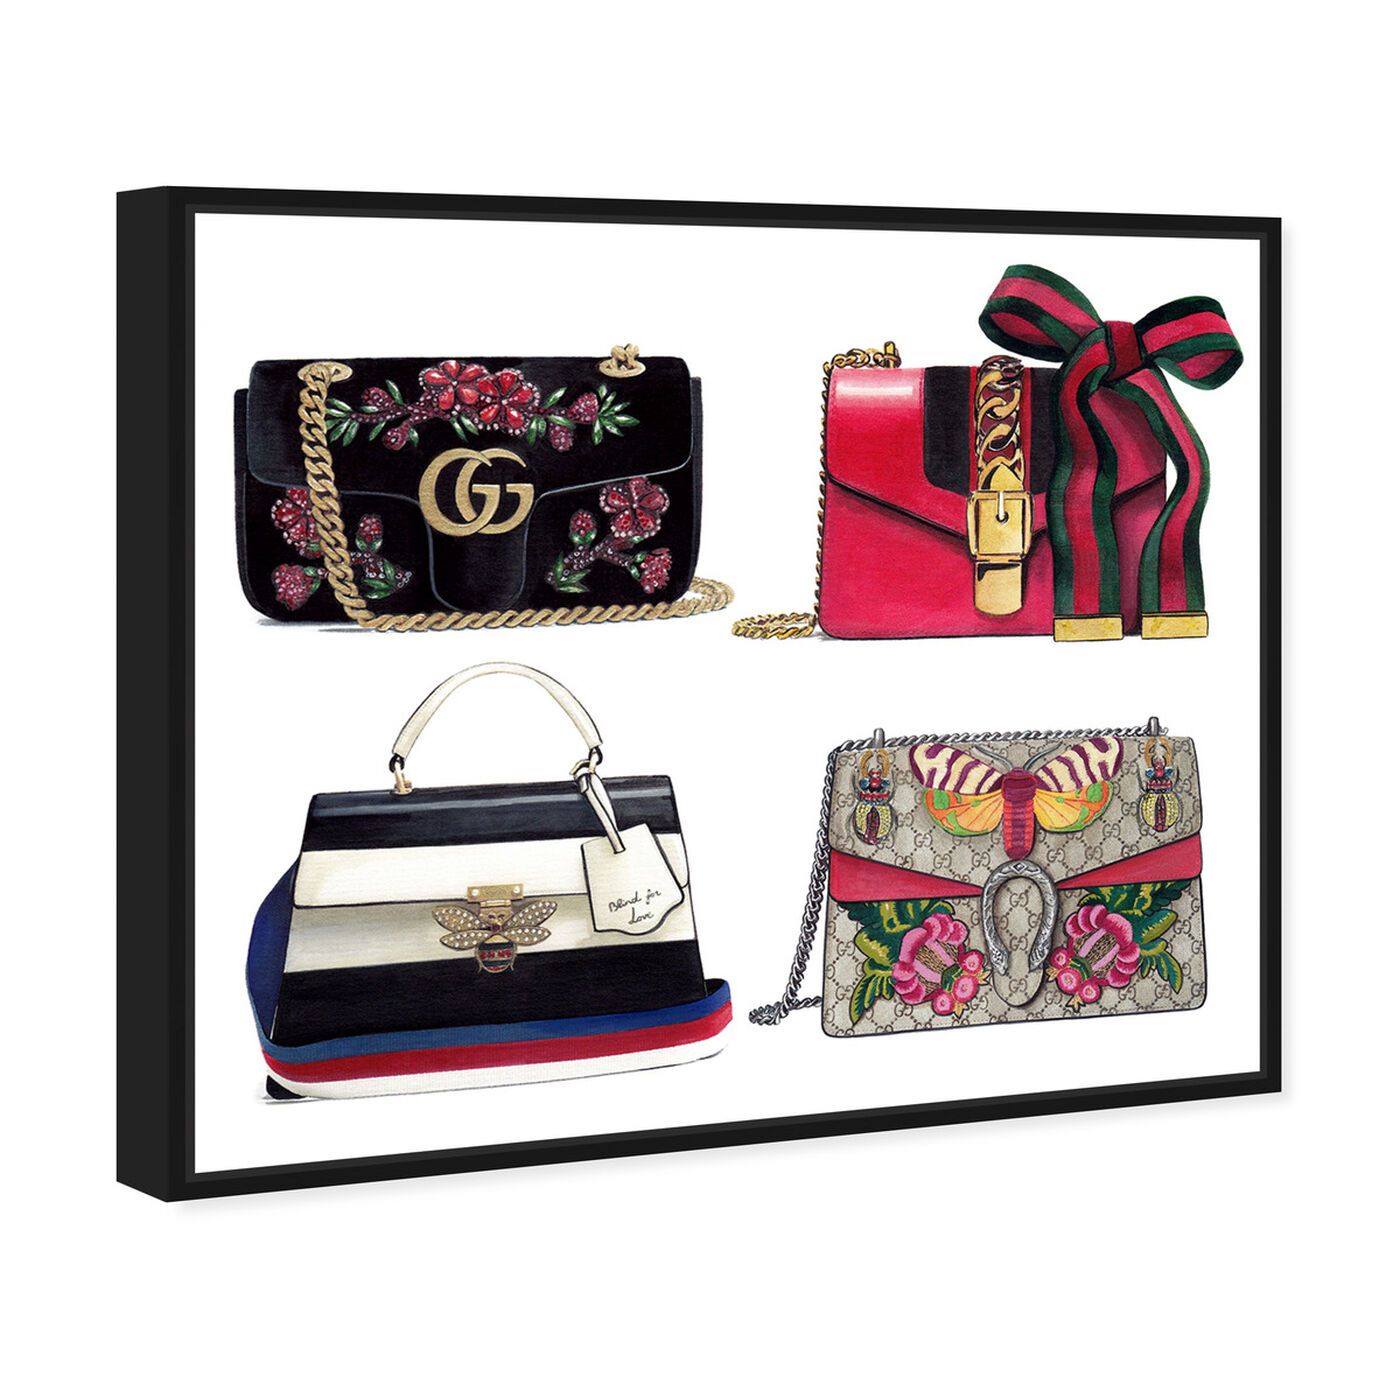 Angled view of Doll Memories - Collage featuring fashion and glam and handbags art.